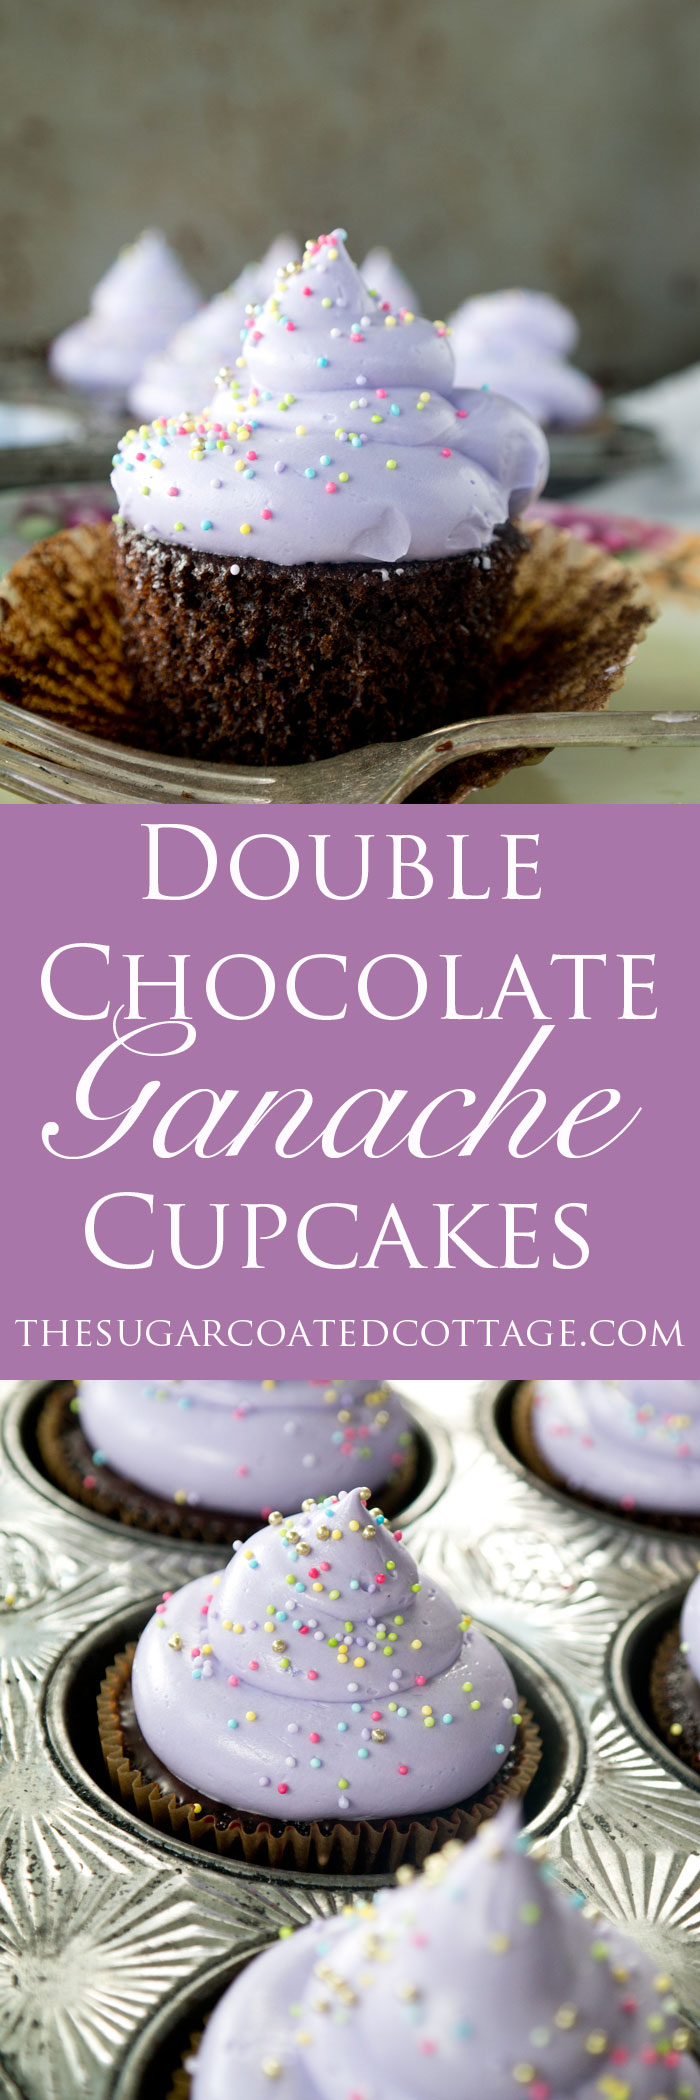 Double Chocolate Ganache Filled Cupcakes